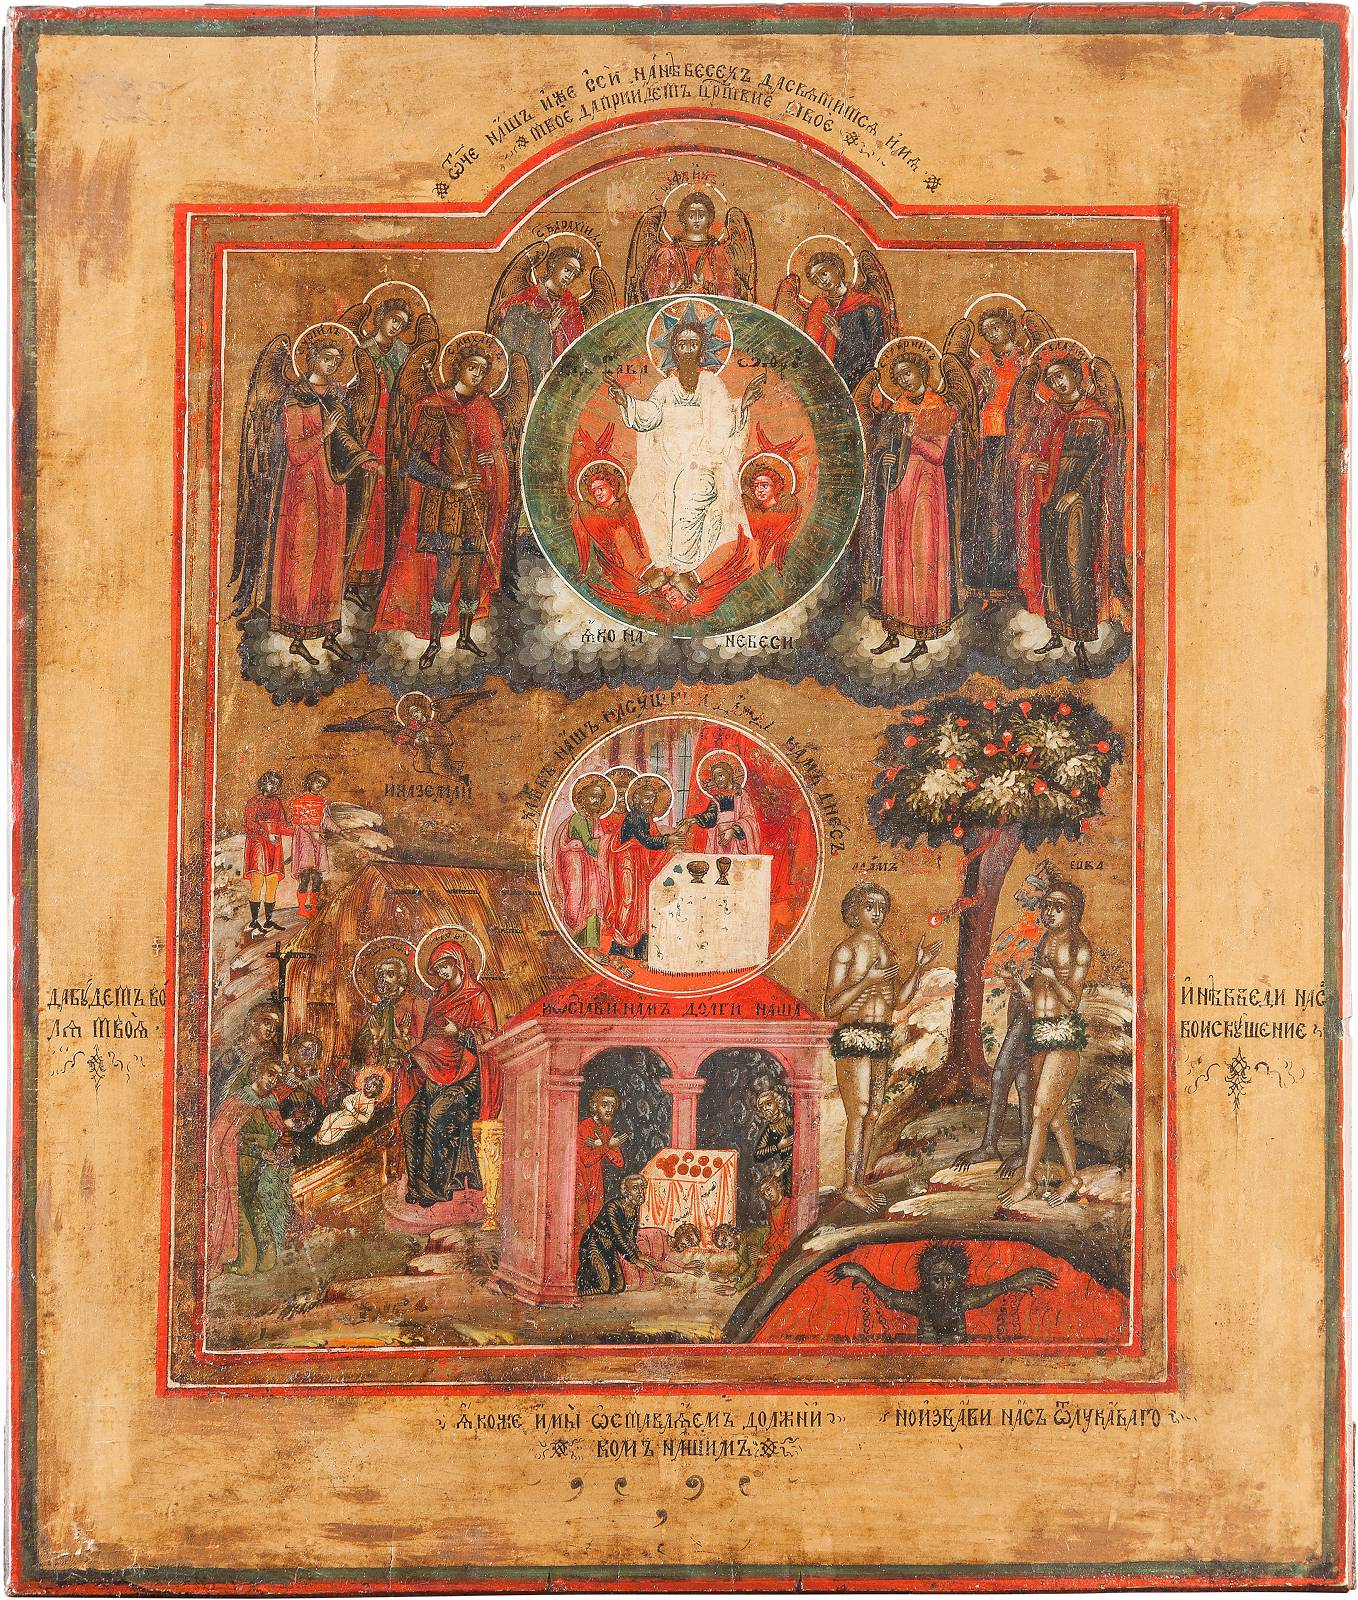 Lot 653 - A VERY RARE ICON: A VISUAL REPRESENTATION OF THE LORD'S PRAYER 'OUR FATHER'Russian, circa 1800